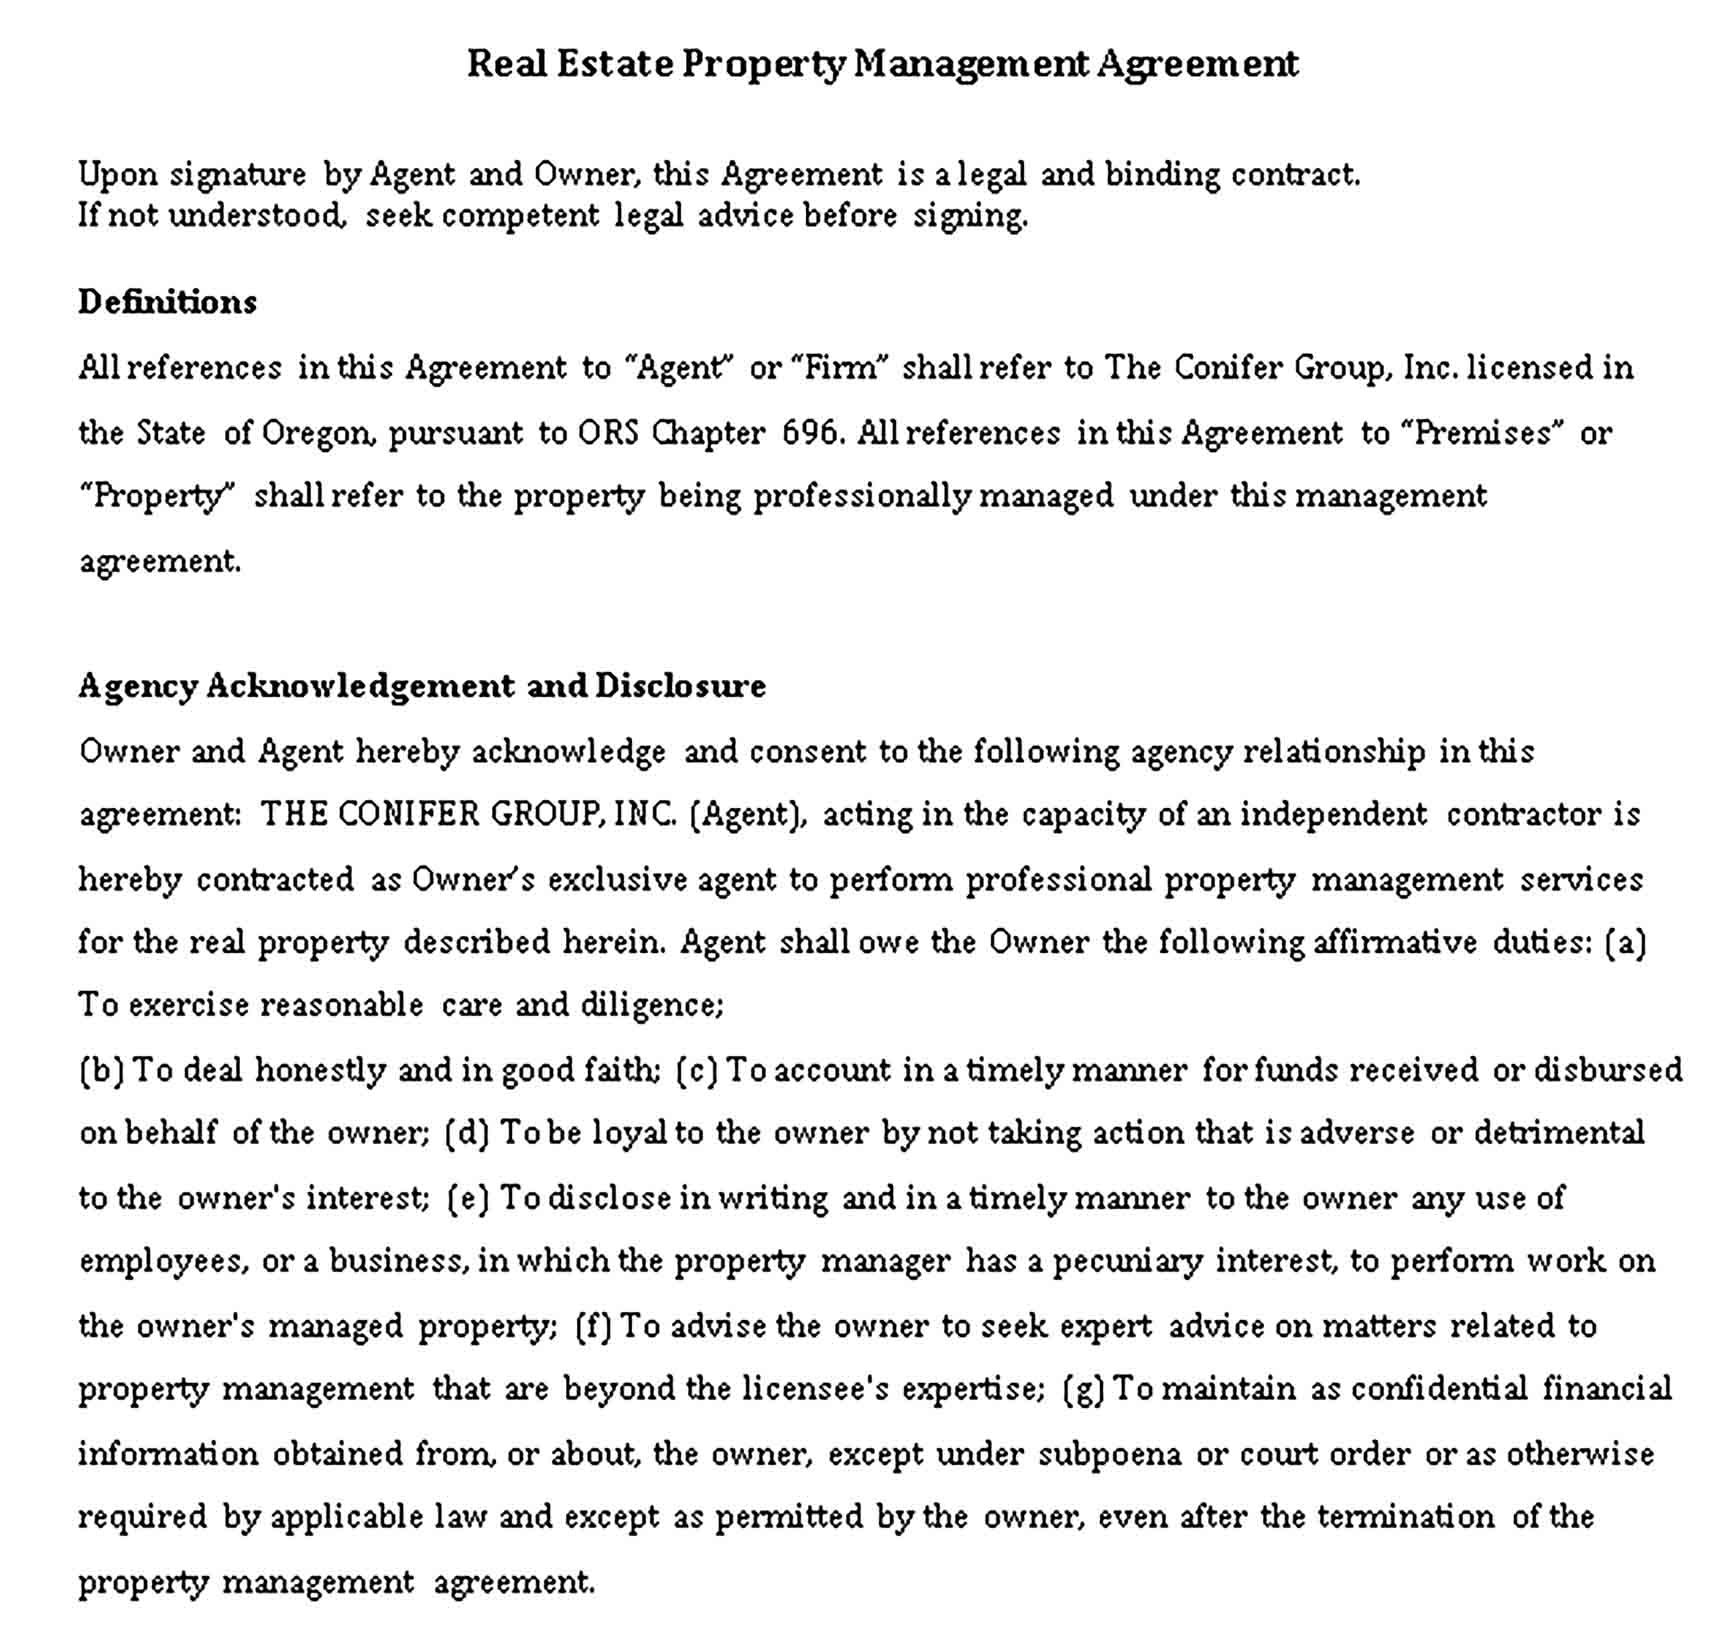 Templates Real Estate Property Management Agreement Sample 001